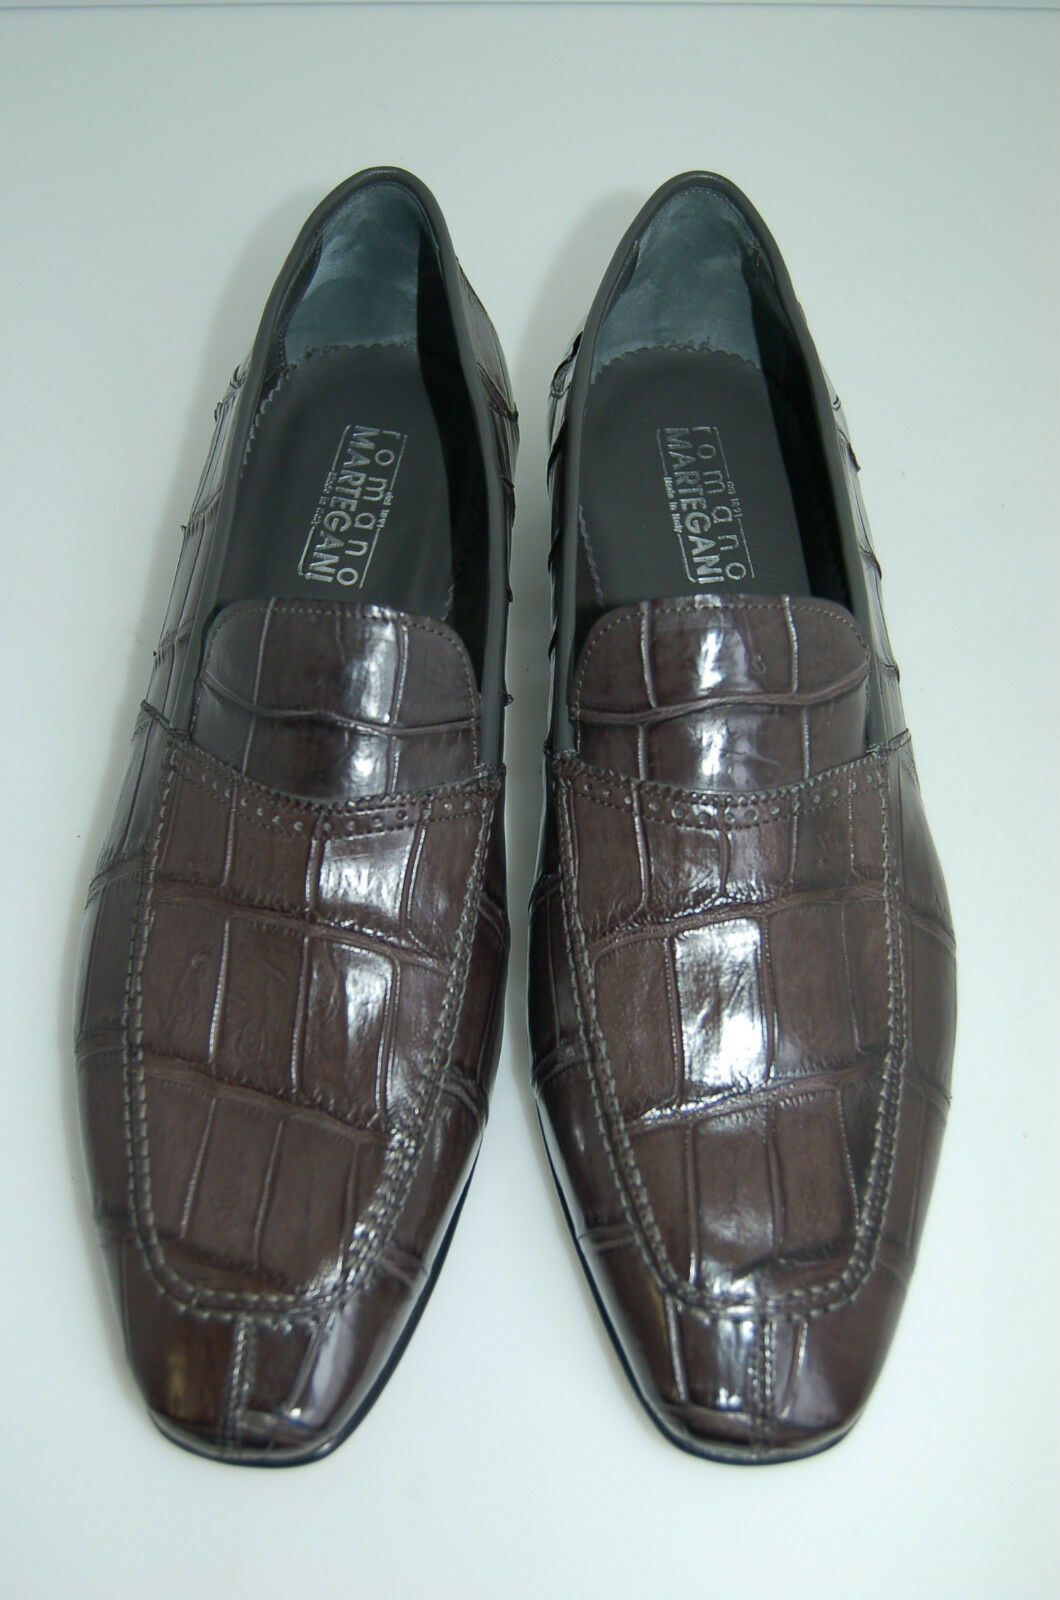 MAN - 44- 10 eu - MOCASSIN -GENUINE grigio ALLIGATOR-VERO ALLIGATORE- LEATHER SOLE | Autentico